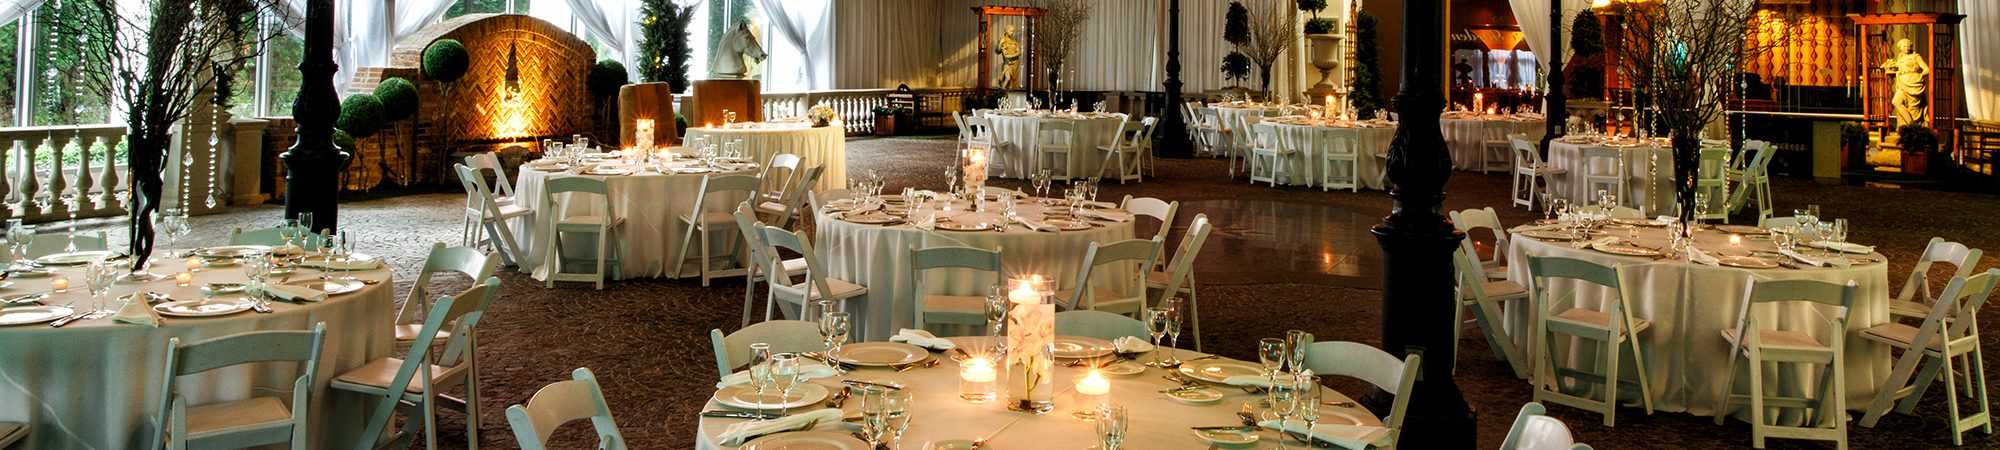 photo of Dining hall with white tables and candles